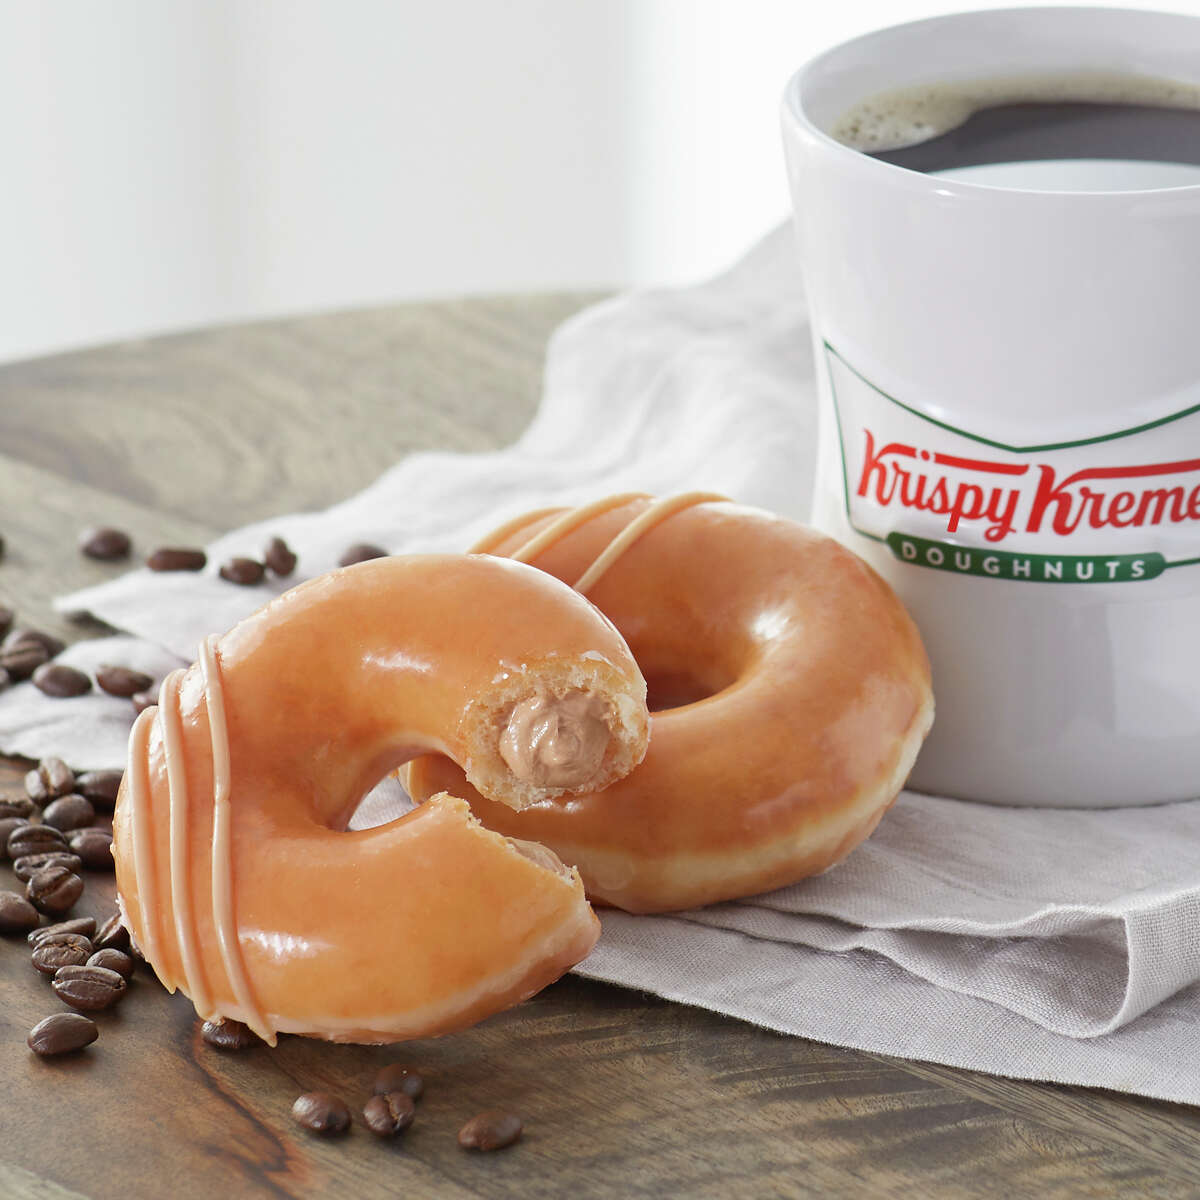 Krispy Kreme The American doughnut guru (with locations in south Seattle and north Seattle) is not only releasing its Original Filled Coffee Kreme Doughnut, but also pouring out a free brewed coffee and a free Original Glazed Doughnut, with absolutely no purchase necessary. Yes, we're all shedding a glazed tear of joy.